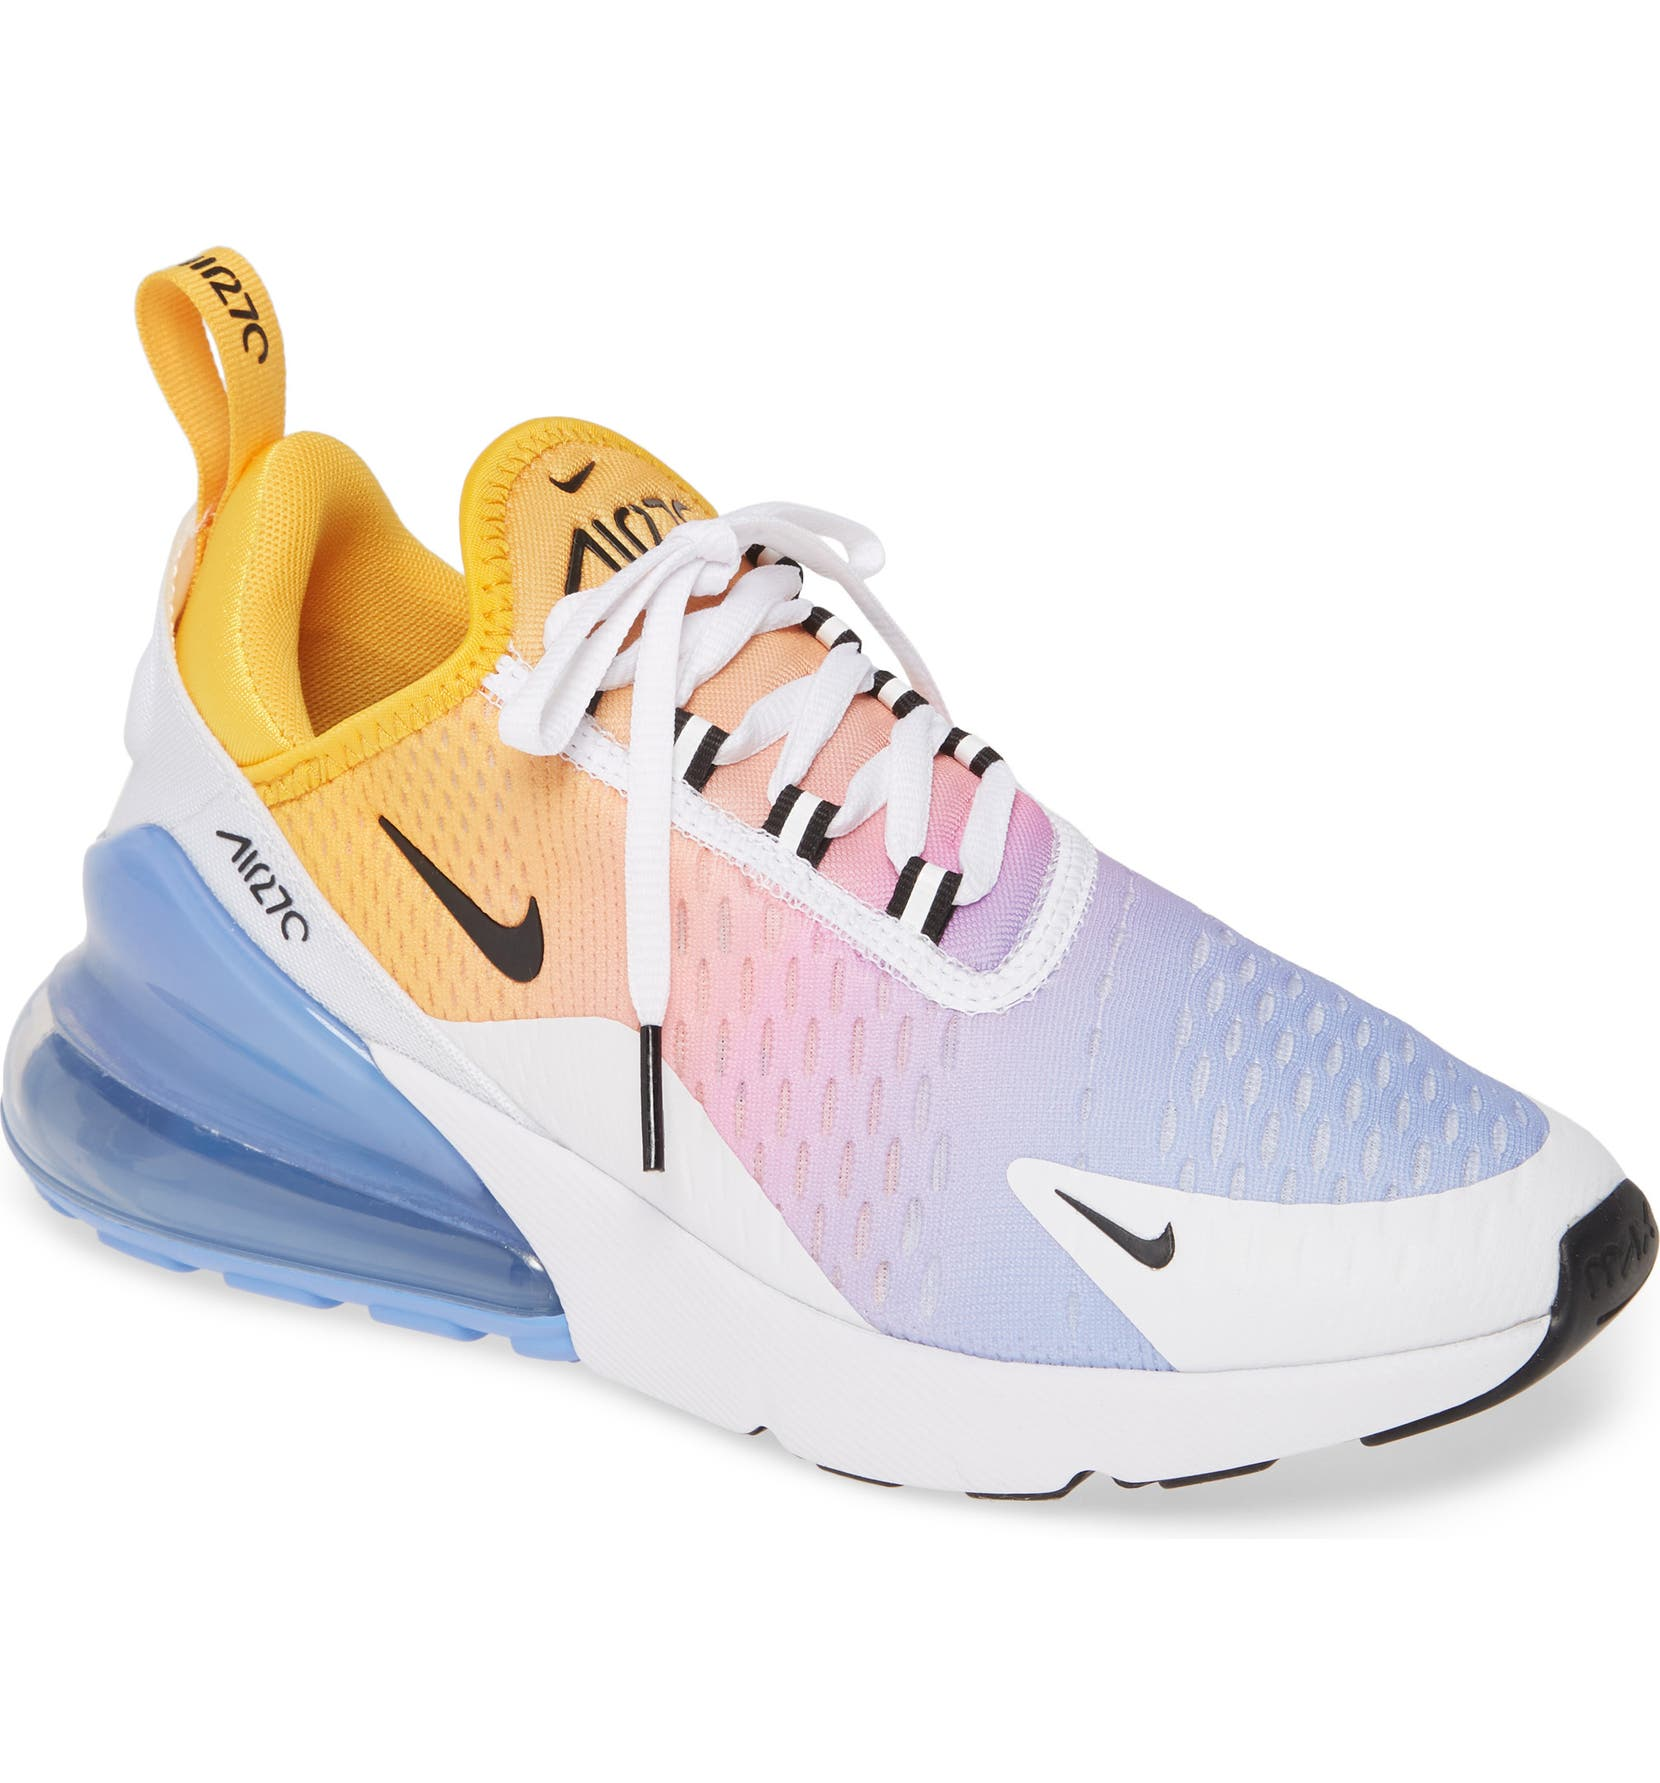 outlet store 12f20 23390 Air Max 270 Premium Sneaker